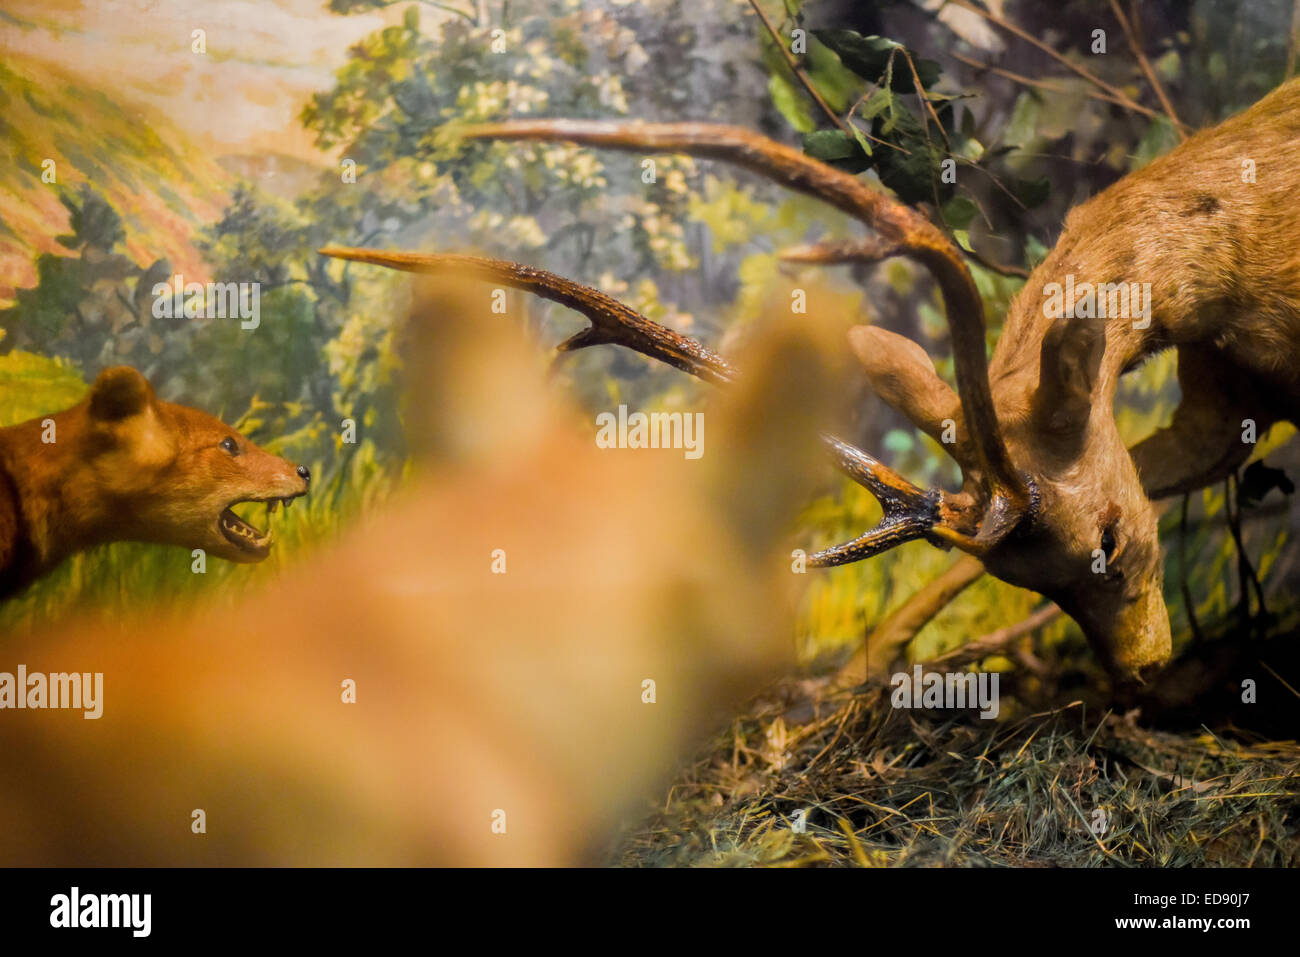 Diorama of Asiatic wild dogs (Cuon alpinus) hunting a deer at Zoology Museum, Bogor. - Stock Image